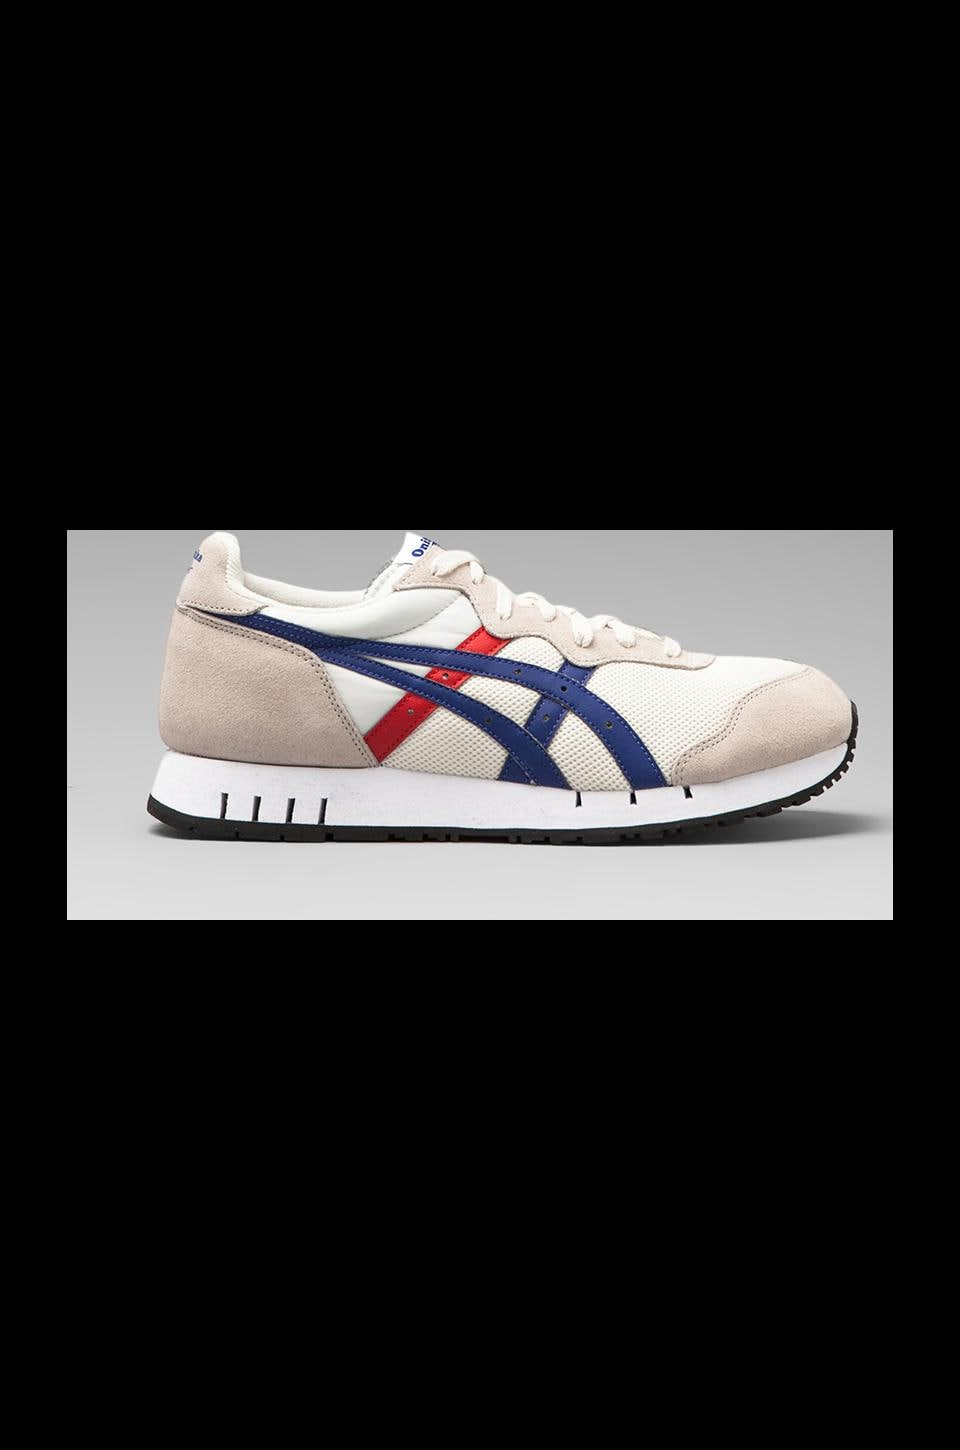 Onitsuka Tiger X-Caliber in Off-White/Blue